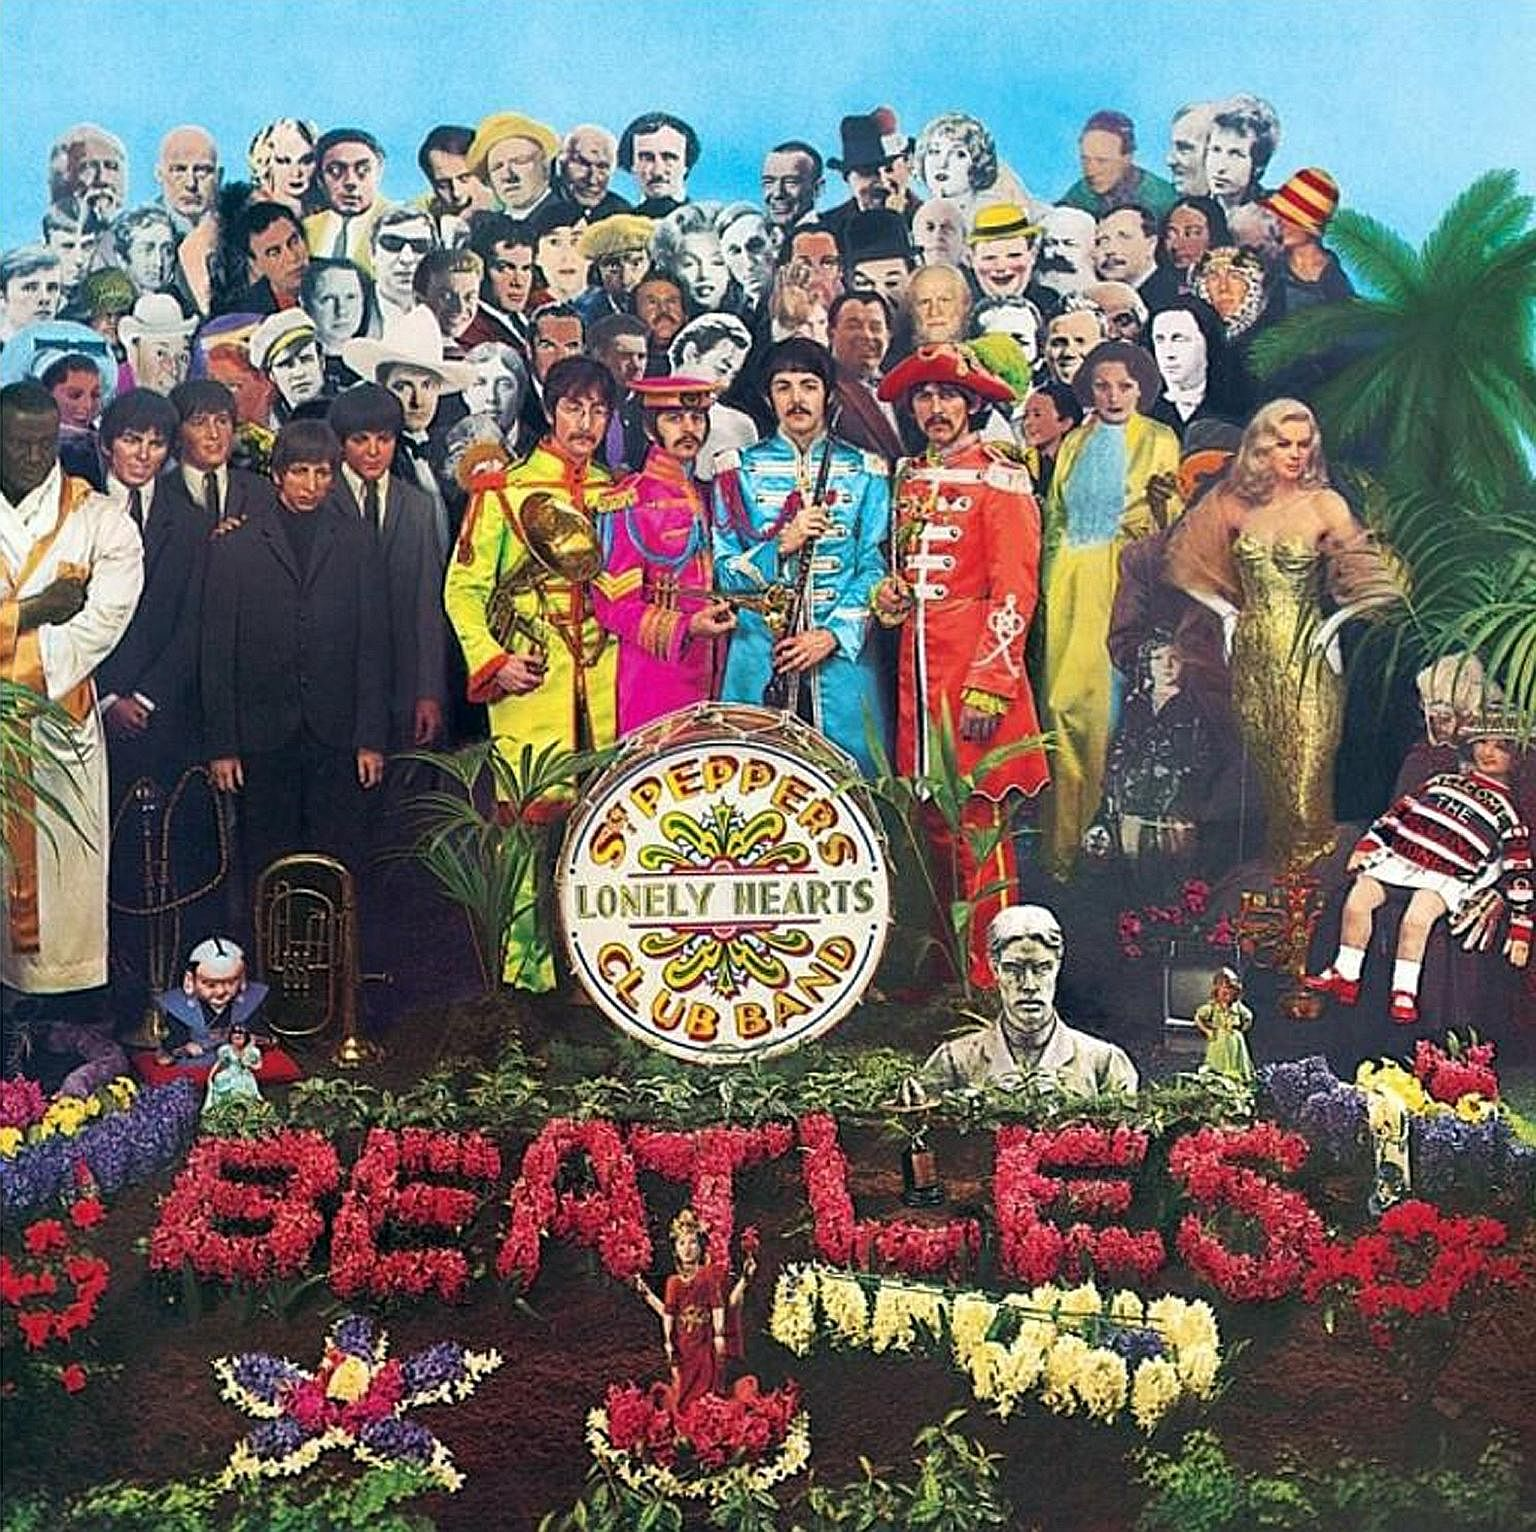 The 50th- anniversary deluxe version of The Beatles' Sgt Pepper's Lonely Hearts Club Band has been remastered to give the album a broader soundstage and crisper detail, giving more separation to individual voices and instruments.